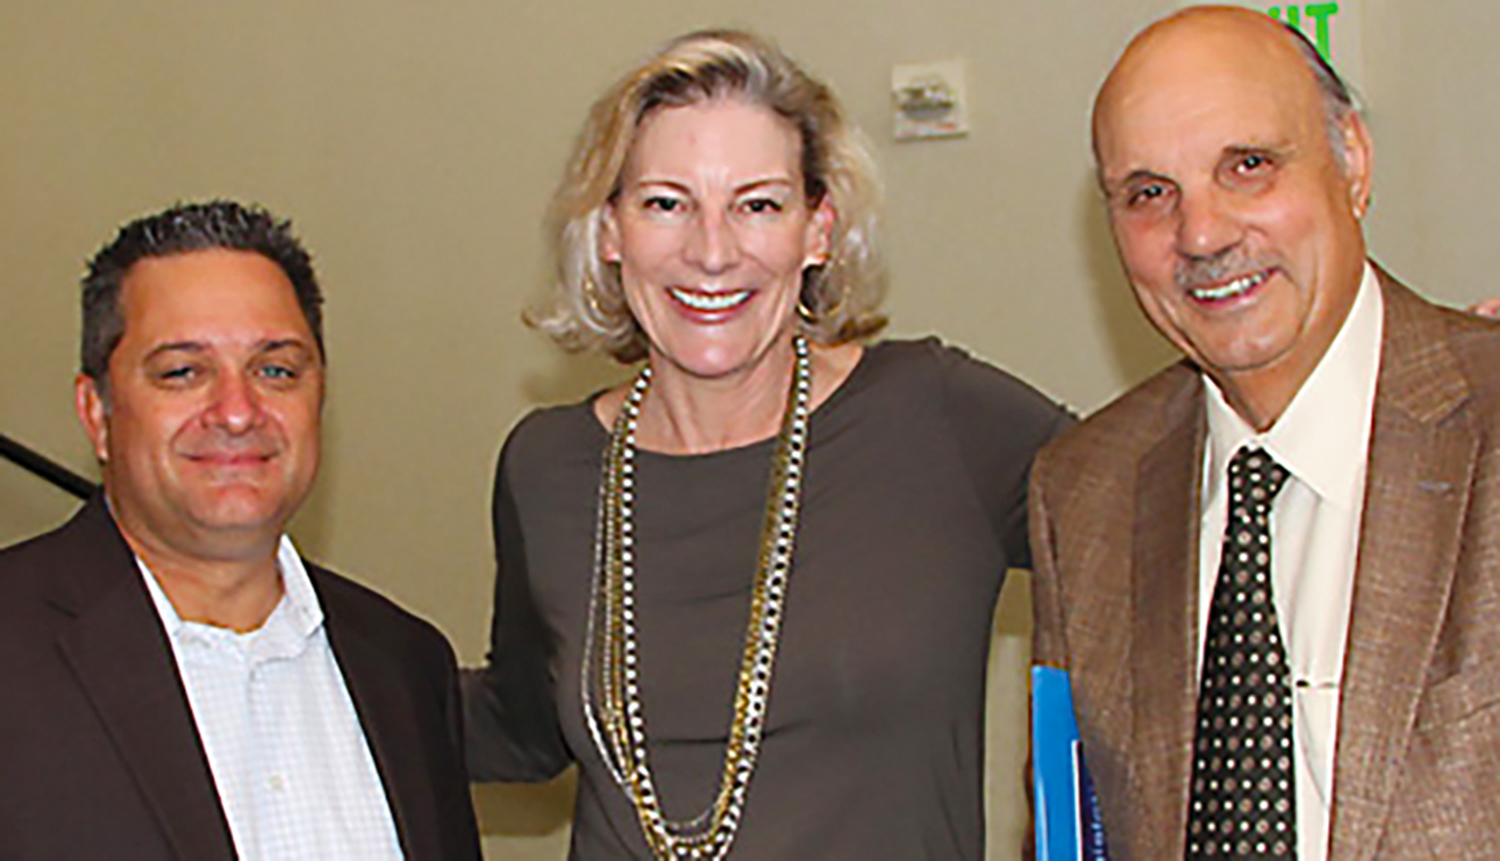 Mike Kirst, right, poses with ACSA Executive Director Wes Smith and former Senior Director of Governmental Relations Karen Stapf Walters in 2015 when Kirst received his ACSA Friend of Education Award.